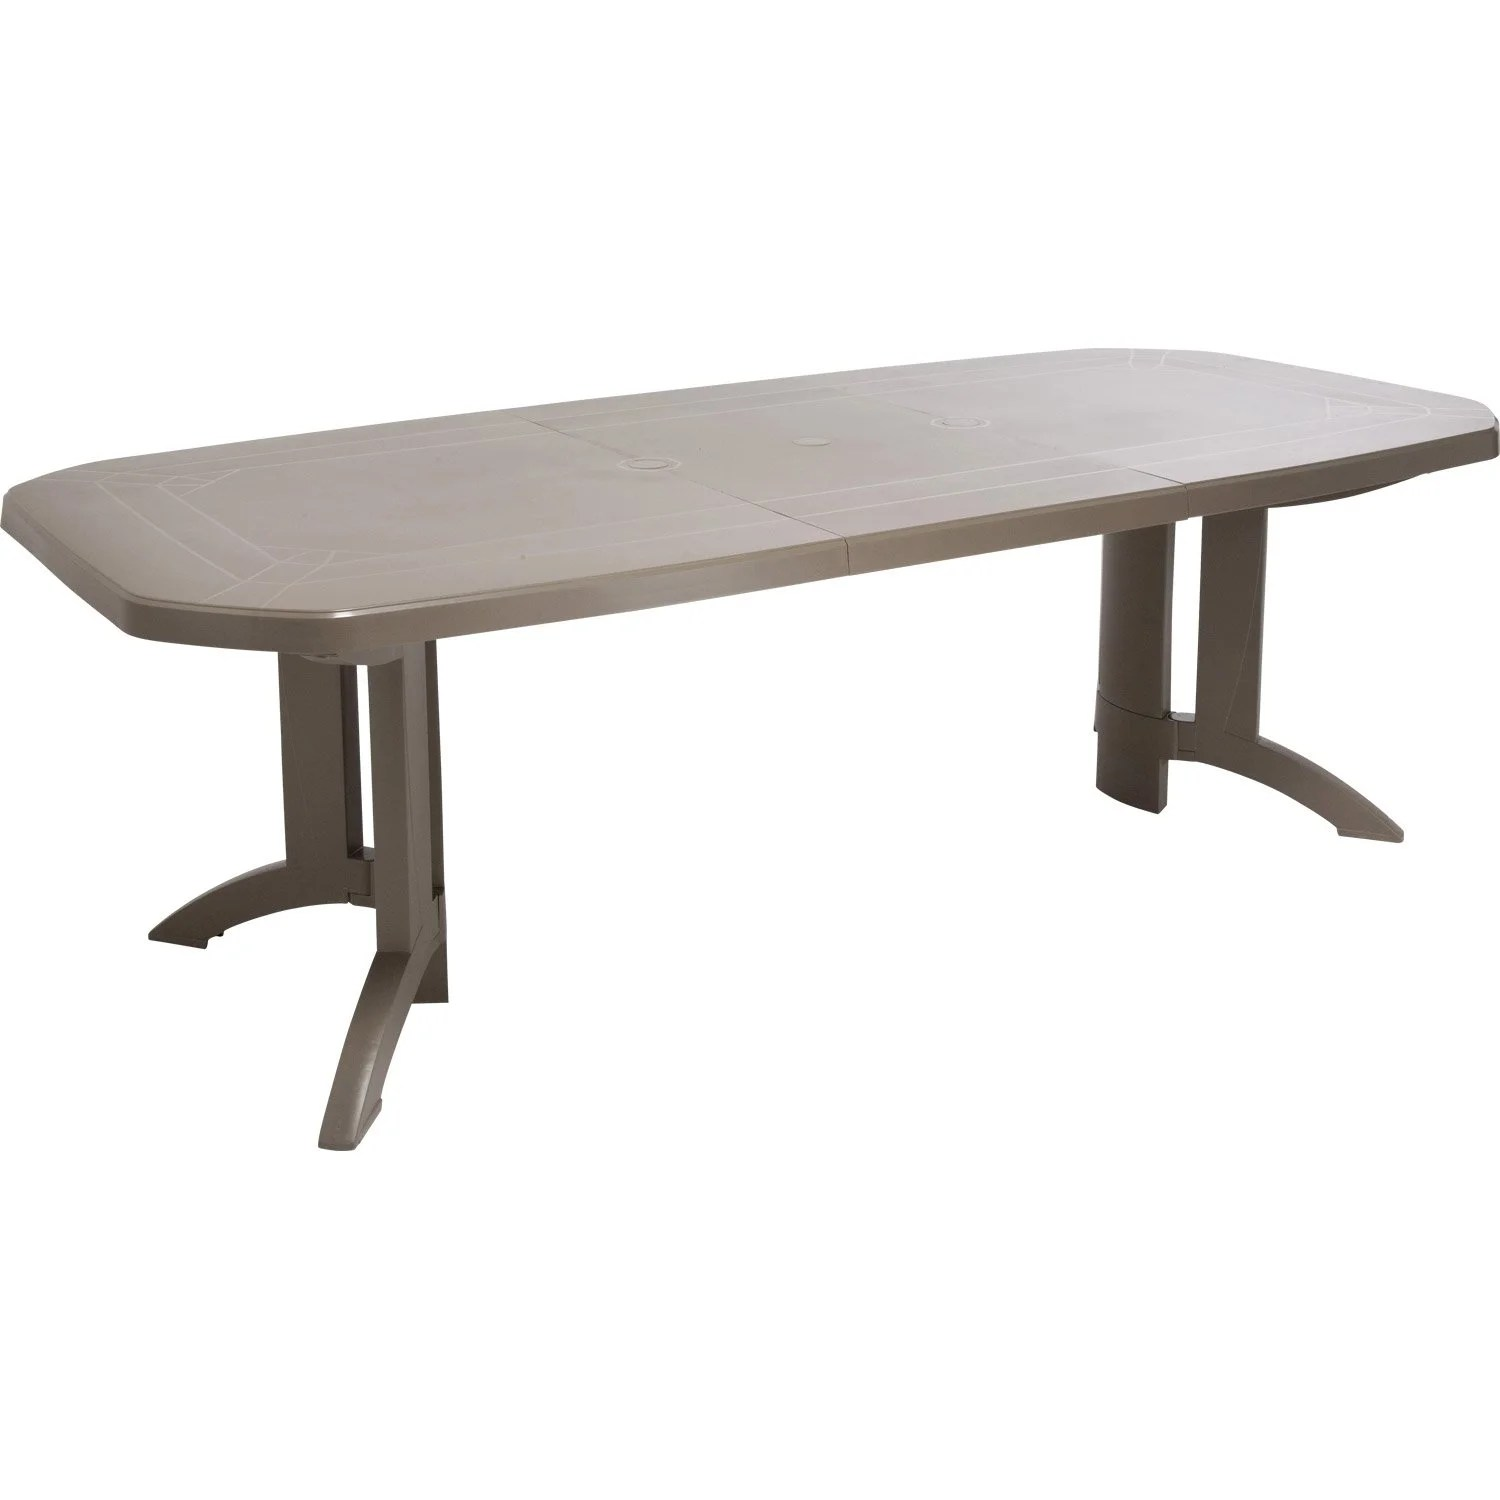 Leroy Merlin Table De Jardin Table De Jardin Grosfillex Véga Rectangulaire Taupe 10